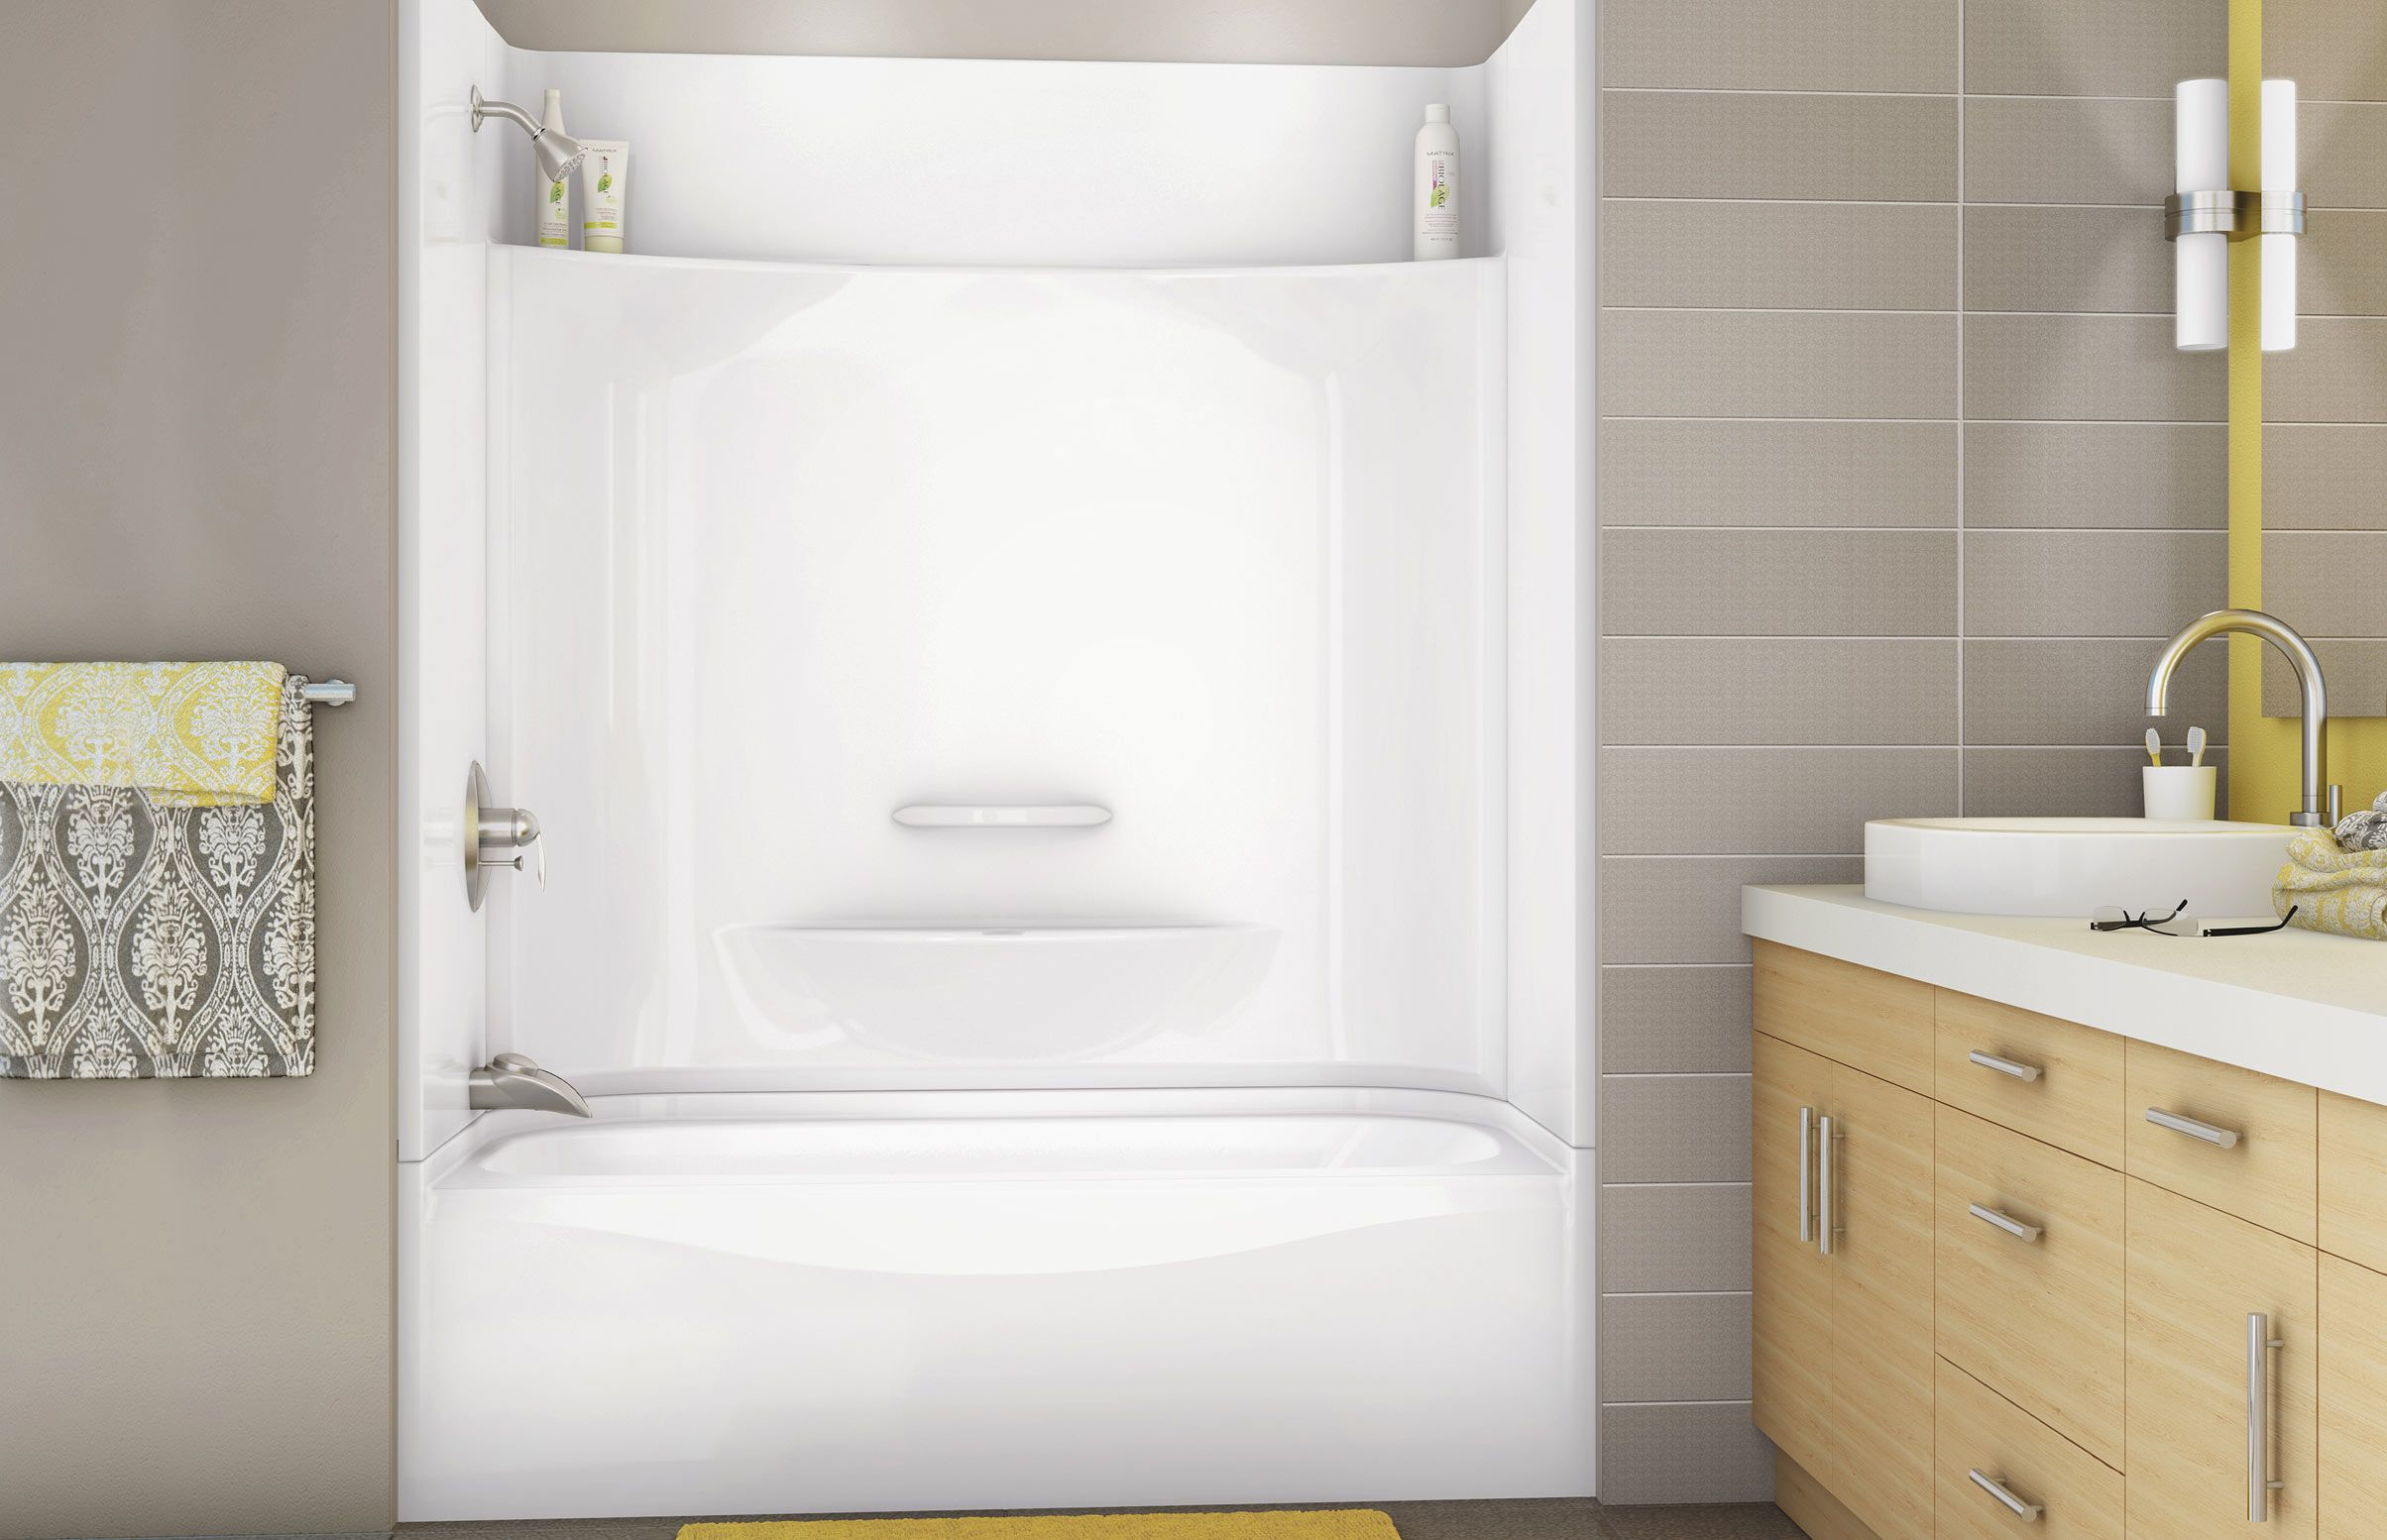 Perfect KDTS 3060 Alcove Or Tub Showers Bathtub   MAAX Professional